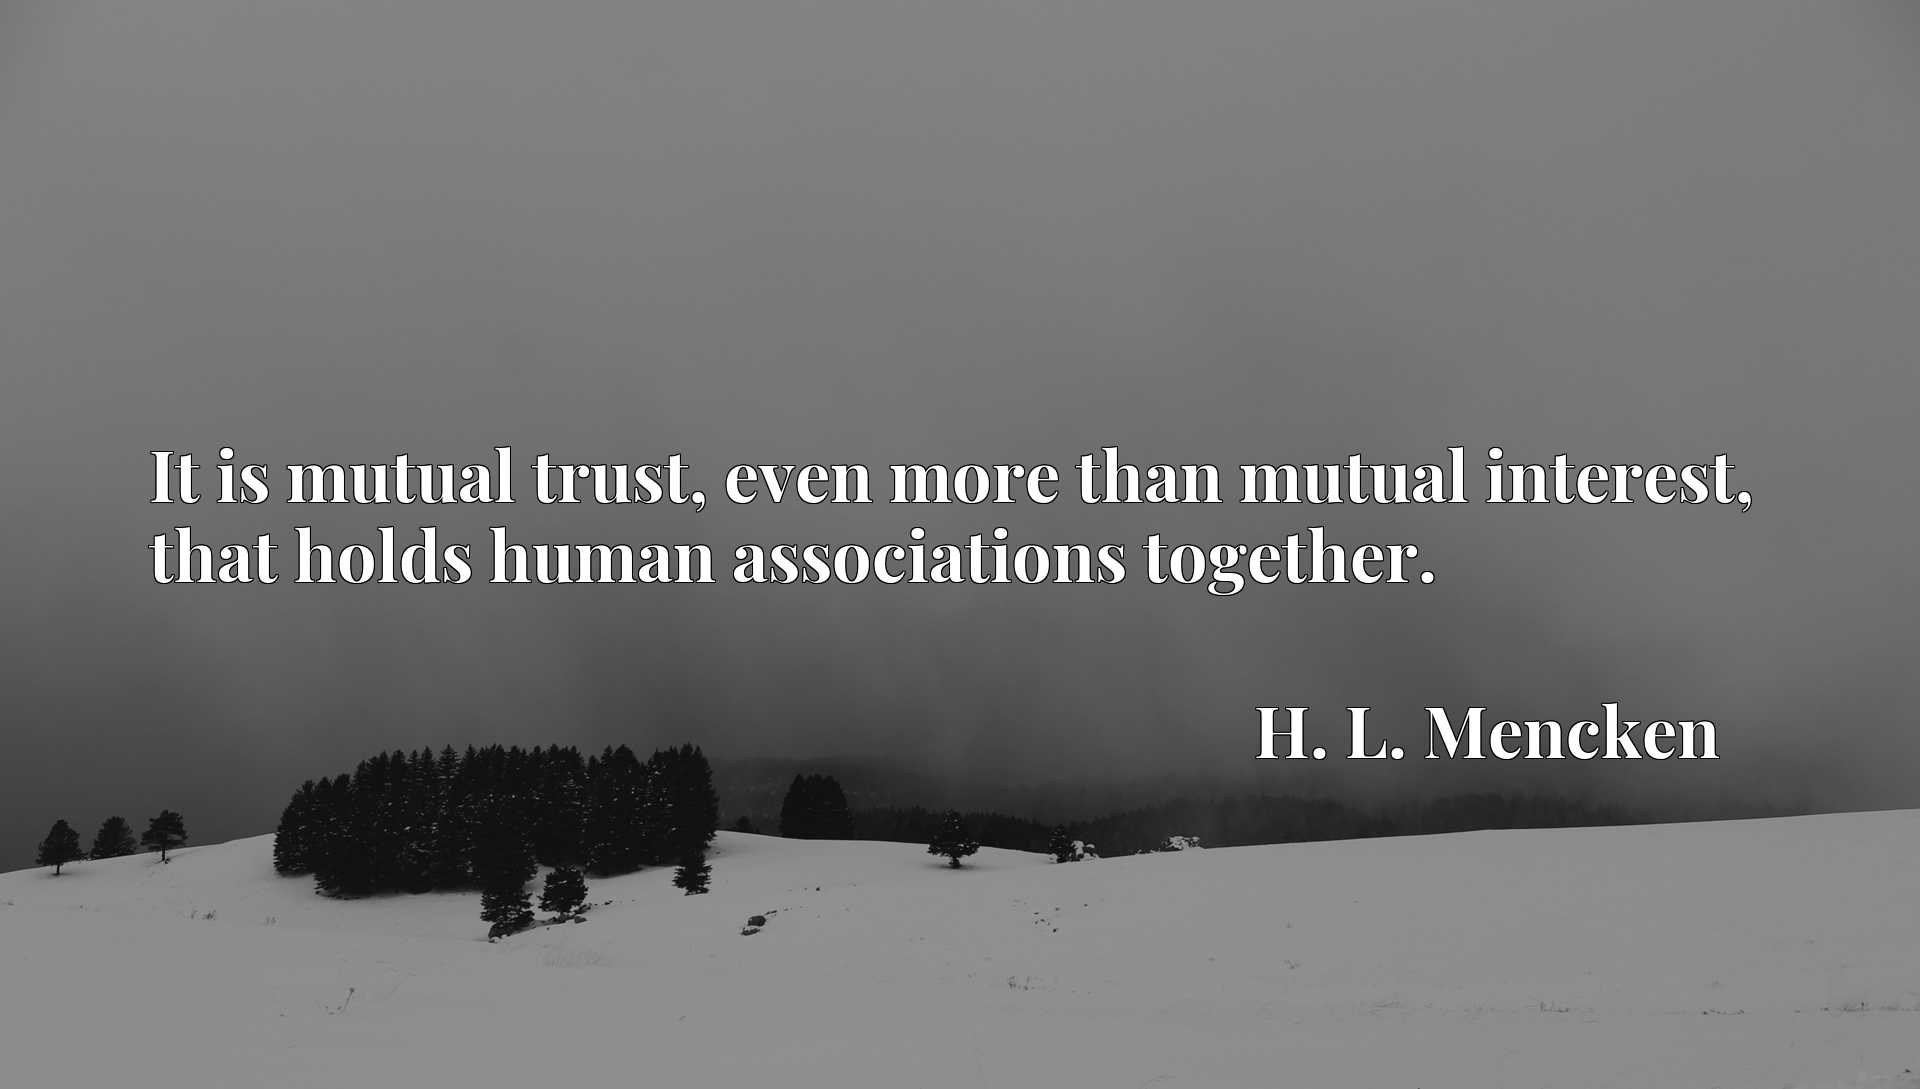 It is mutual trust, even more than mutual interest, that holds human associations together.